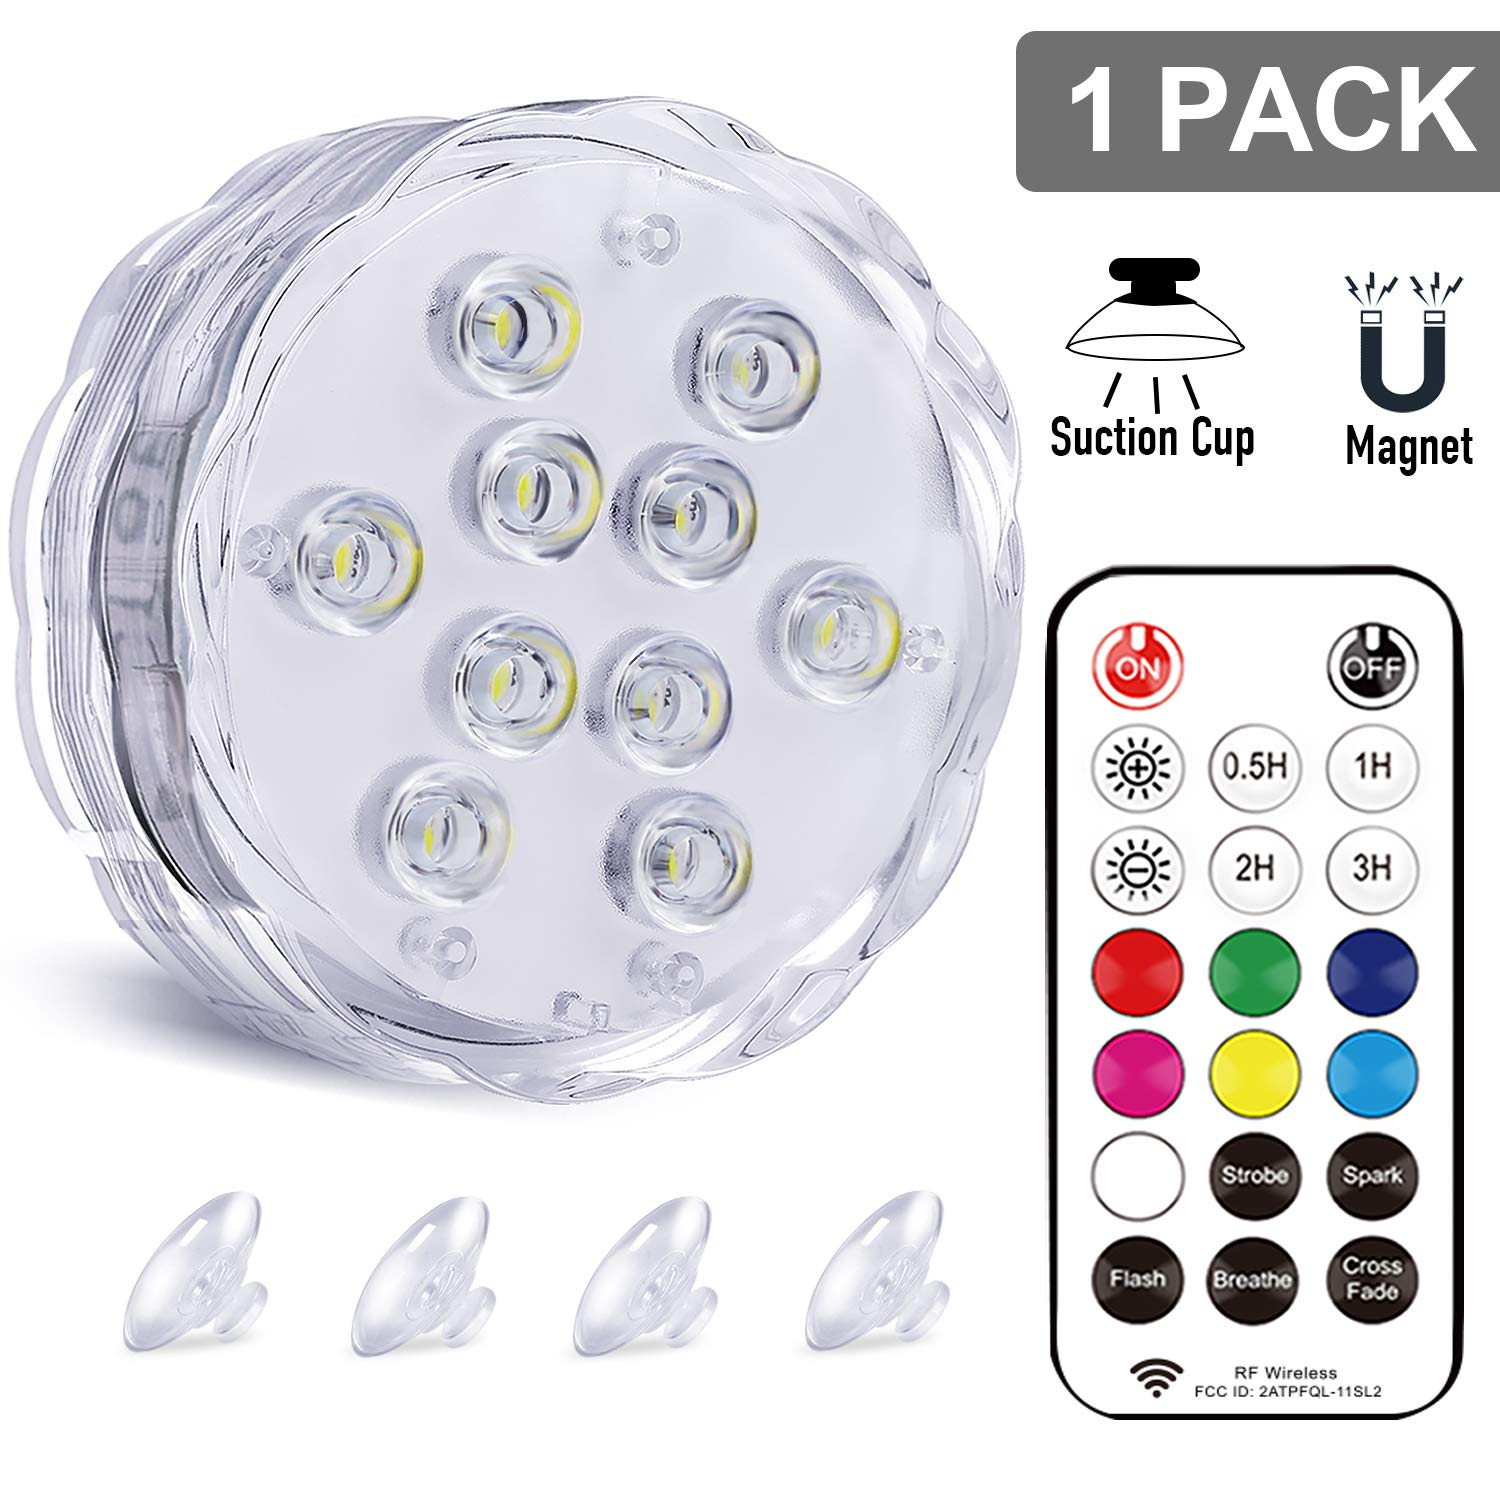 Qoolife RGBW Underwater LED Lights with Magnet, RF Remote and Suction Cups - 3.3